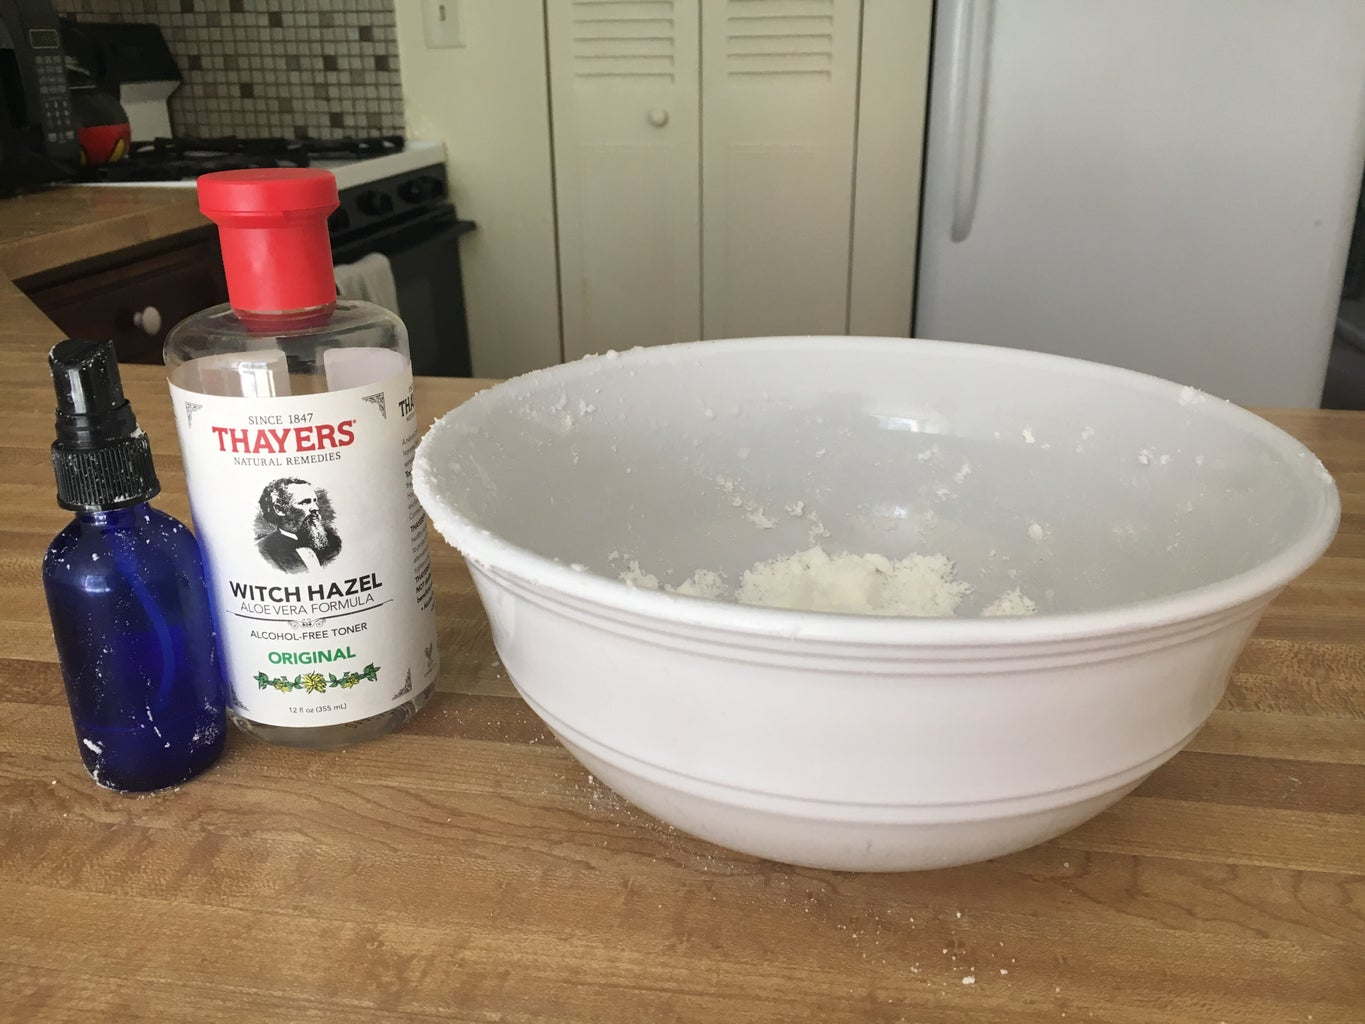 Forming the Ingredients